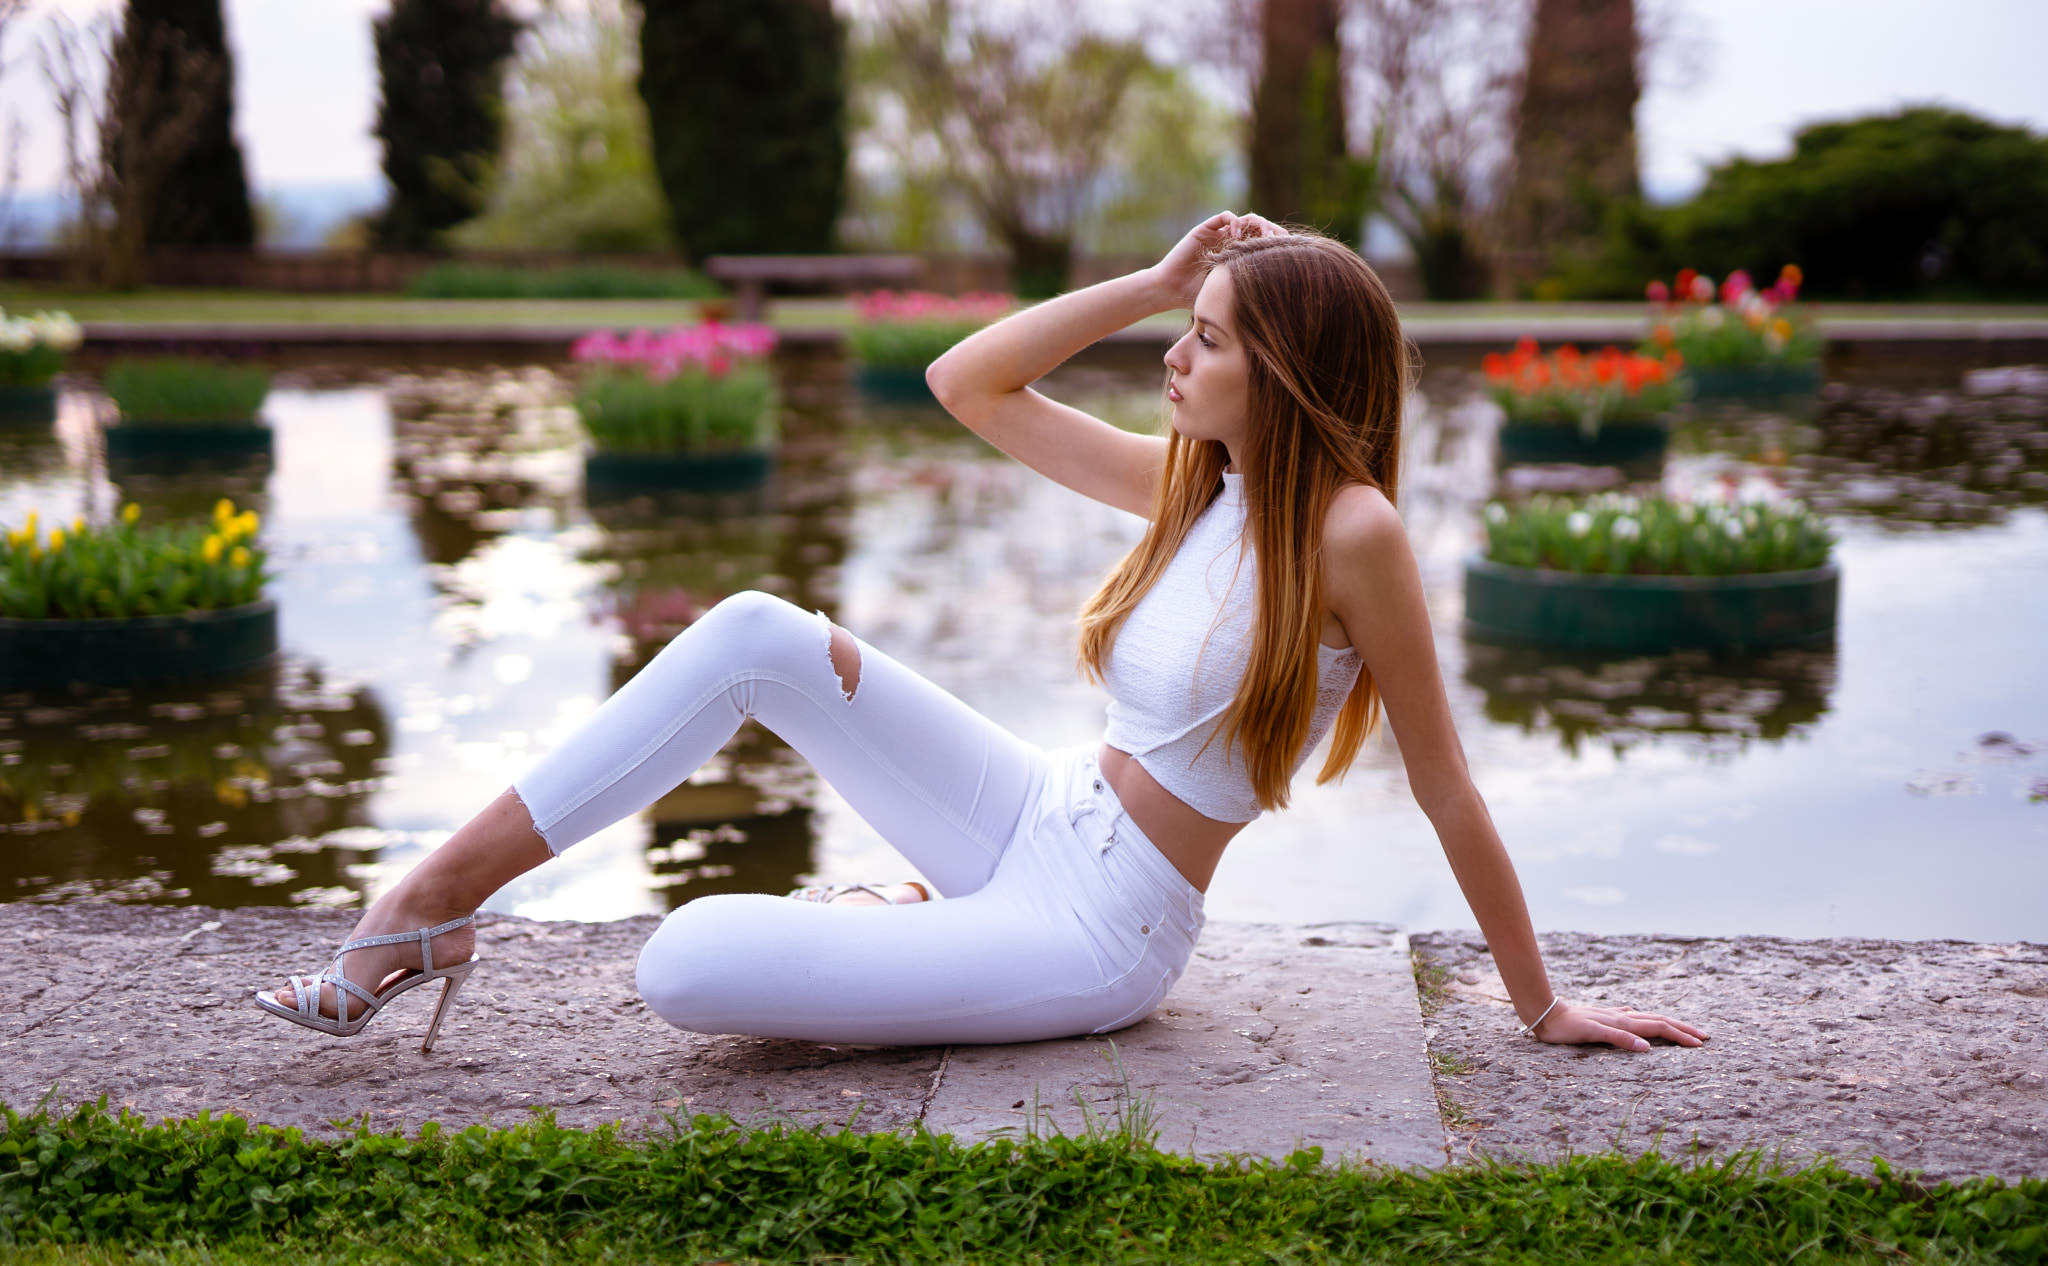 People 2048x1266 women Marco Squassina high heels jeans white clothing sitting long hair women outdoors flowers looking away torn jeans grass